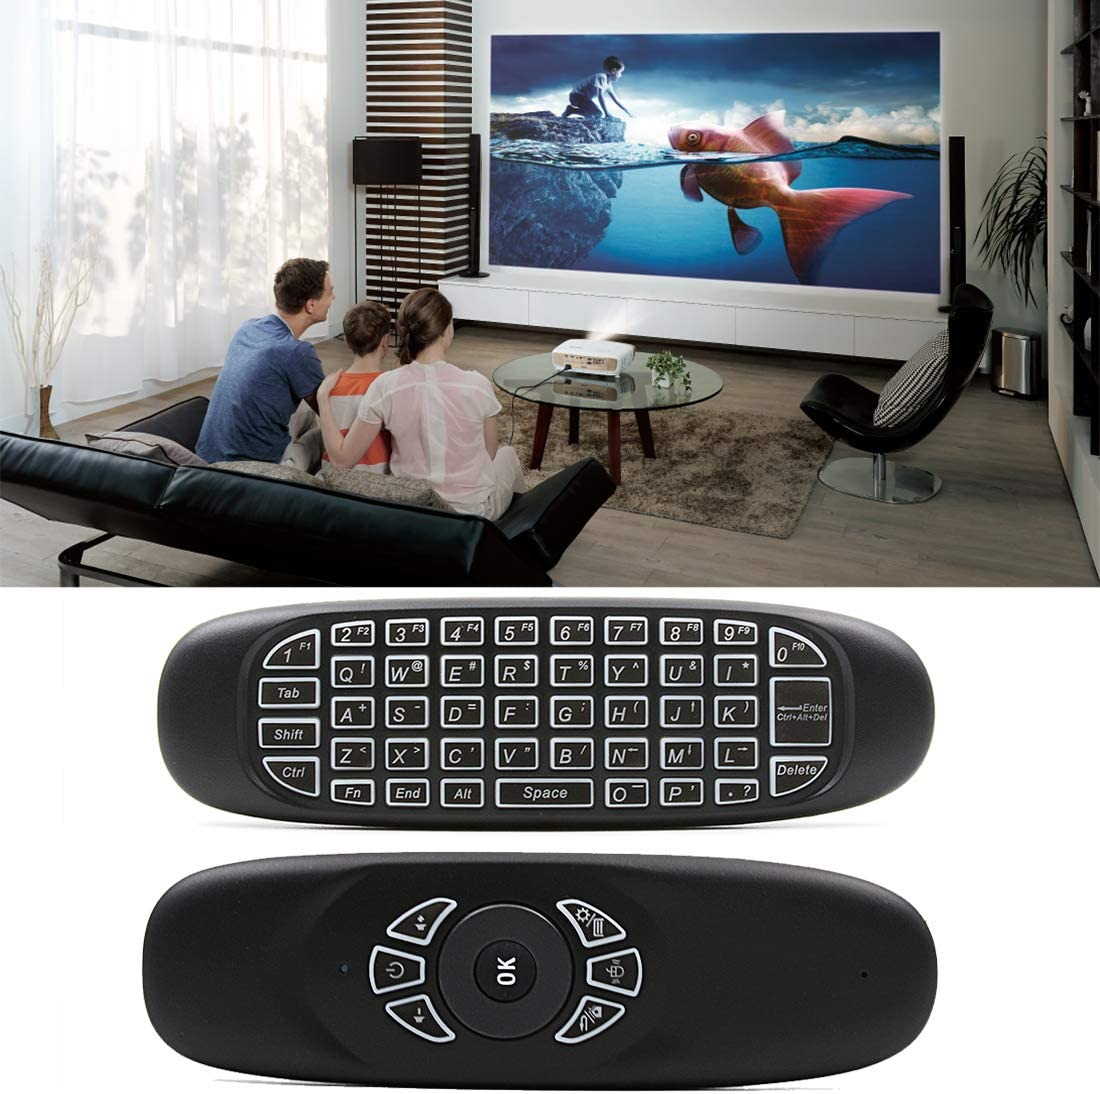 Max 49% OFF C120 Back-Light Air Limited time trial price Mouse 2.4GHz Gyroscope 3D Keyboard Wireless